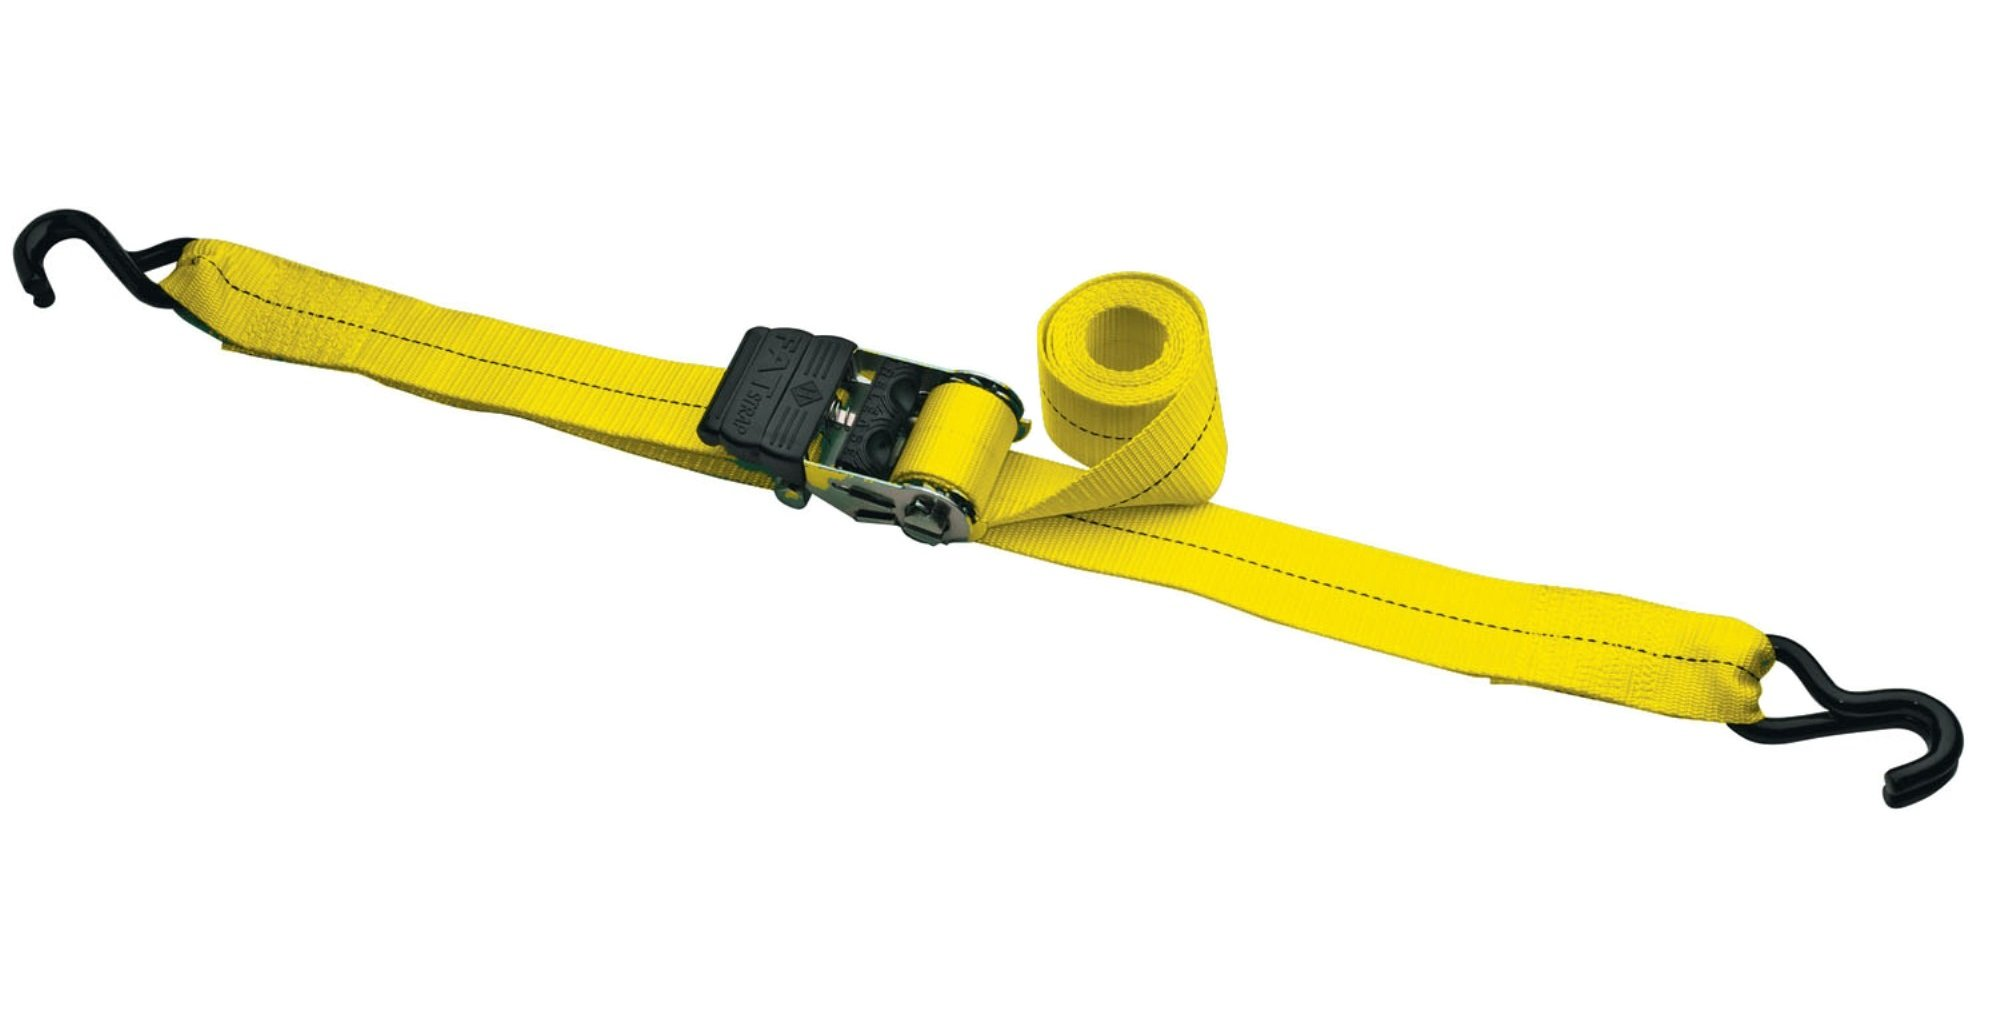 Highland 1151001 Yellow 10' Fat Strap Ratchet Tie Down with Padded Handle